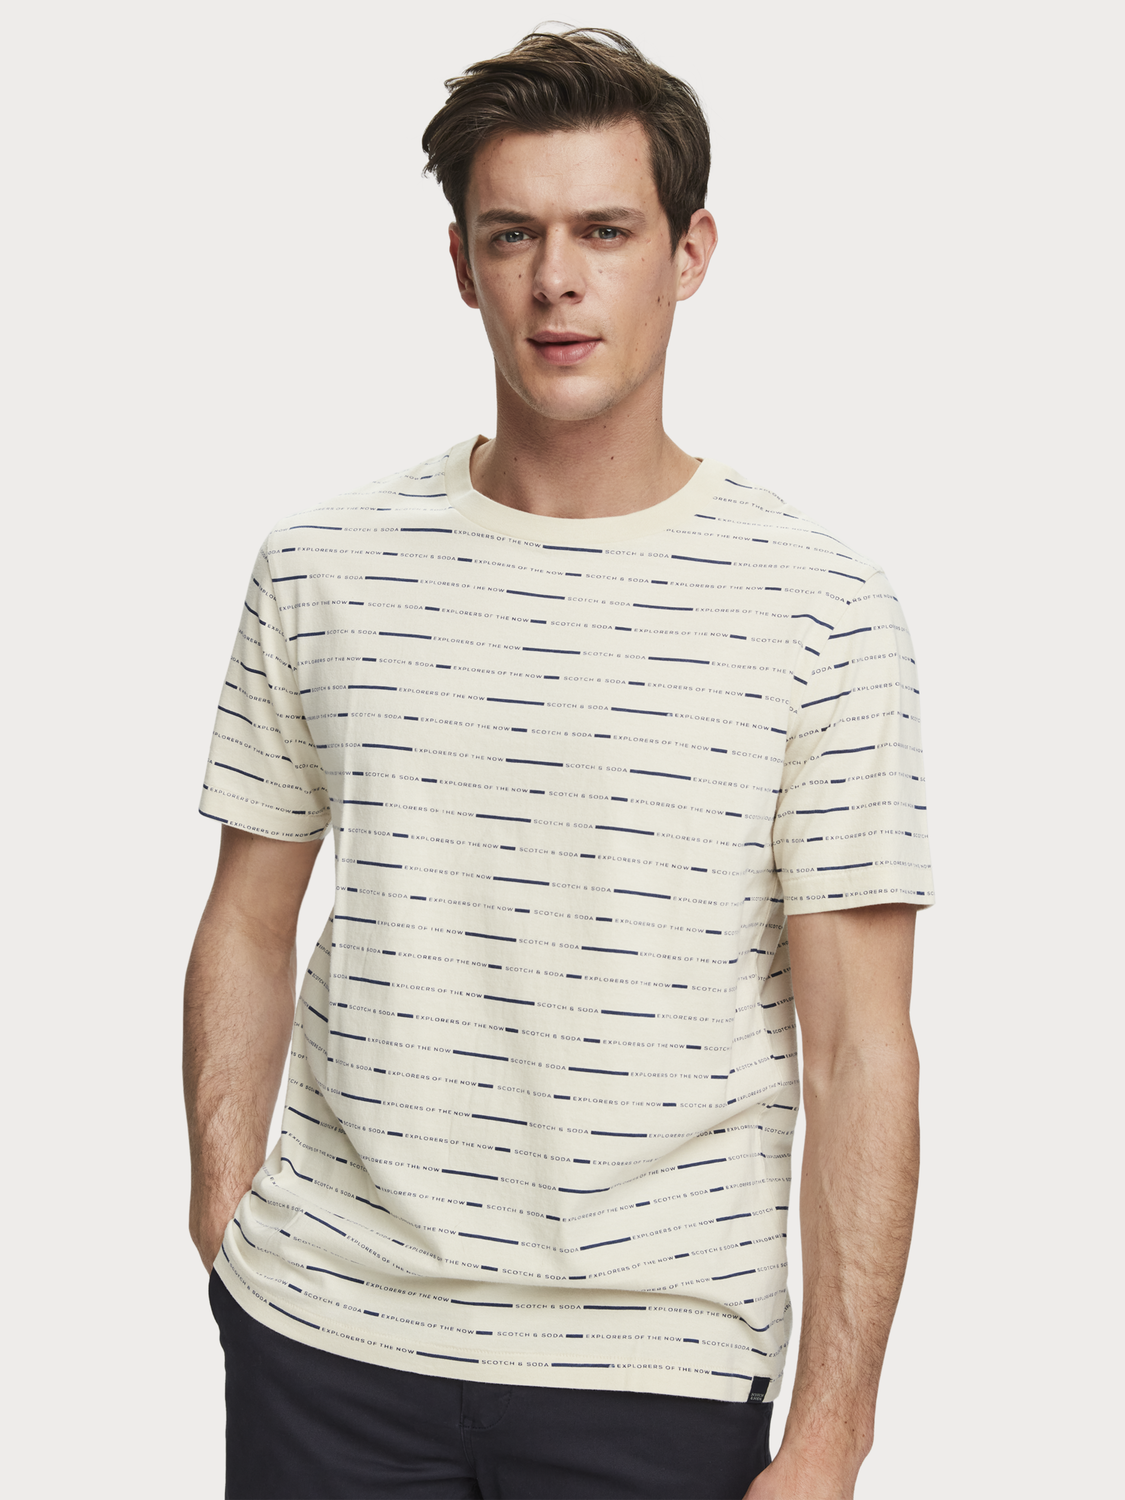 Uomo All-over-print sustainable cotton short sleeve t-shirt